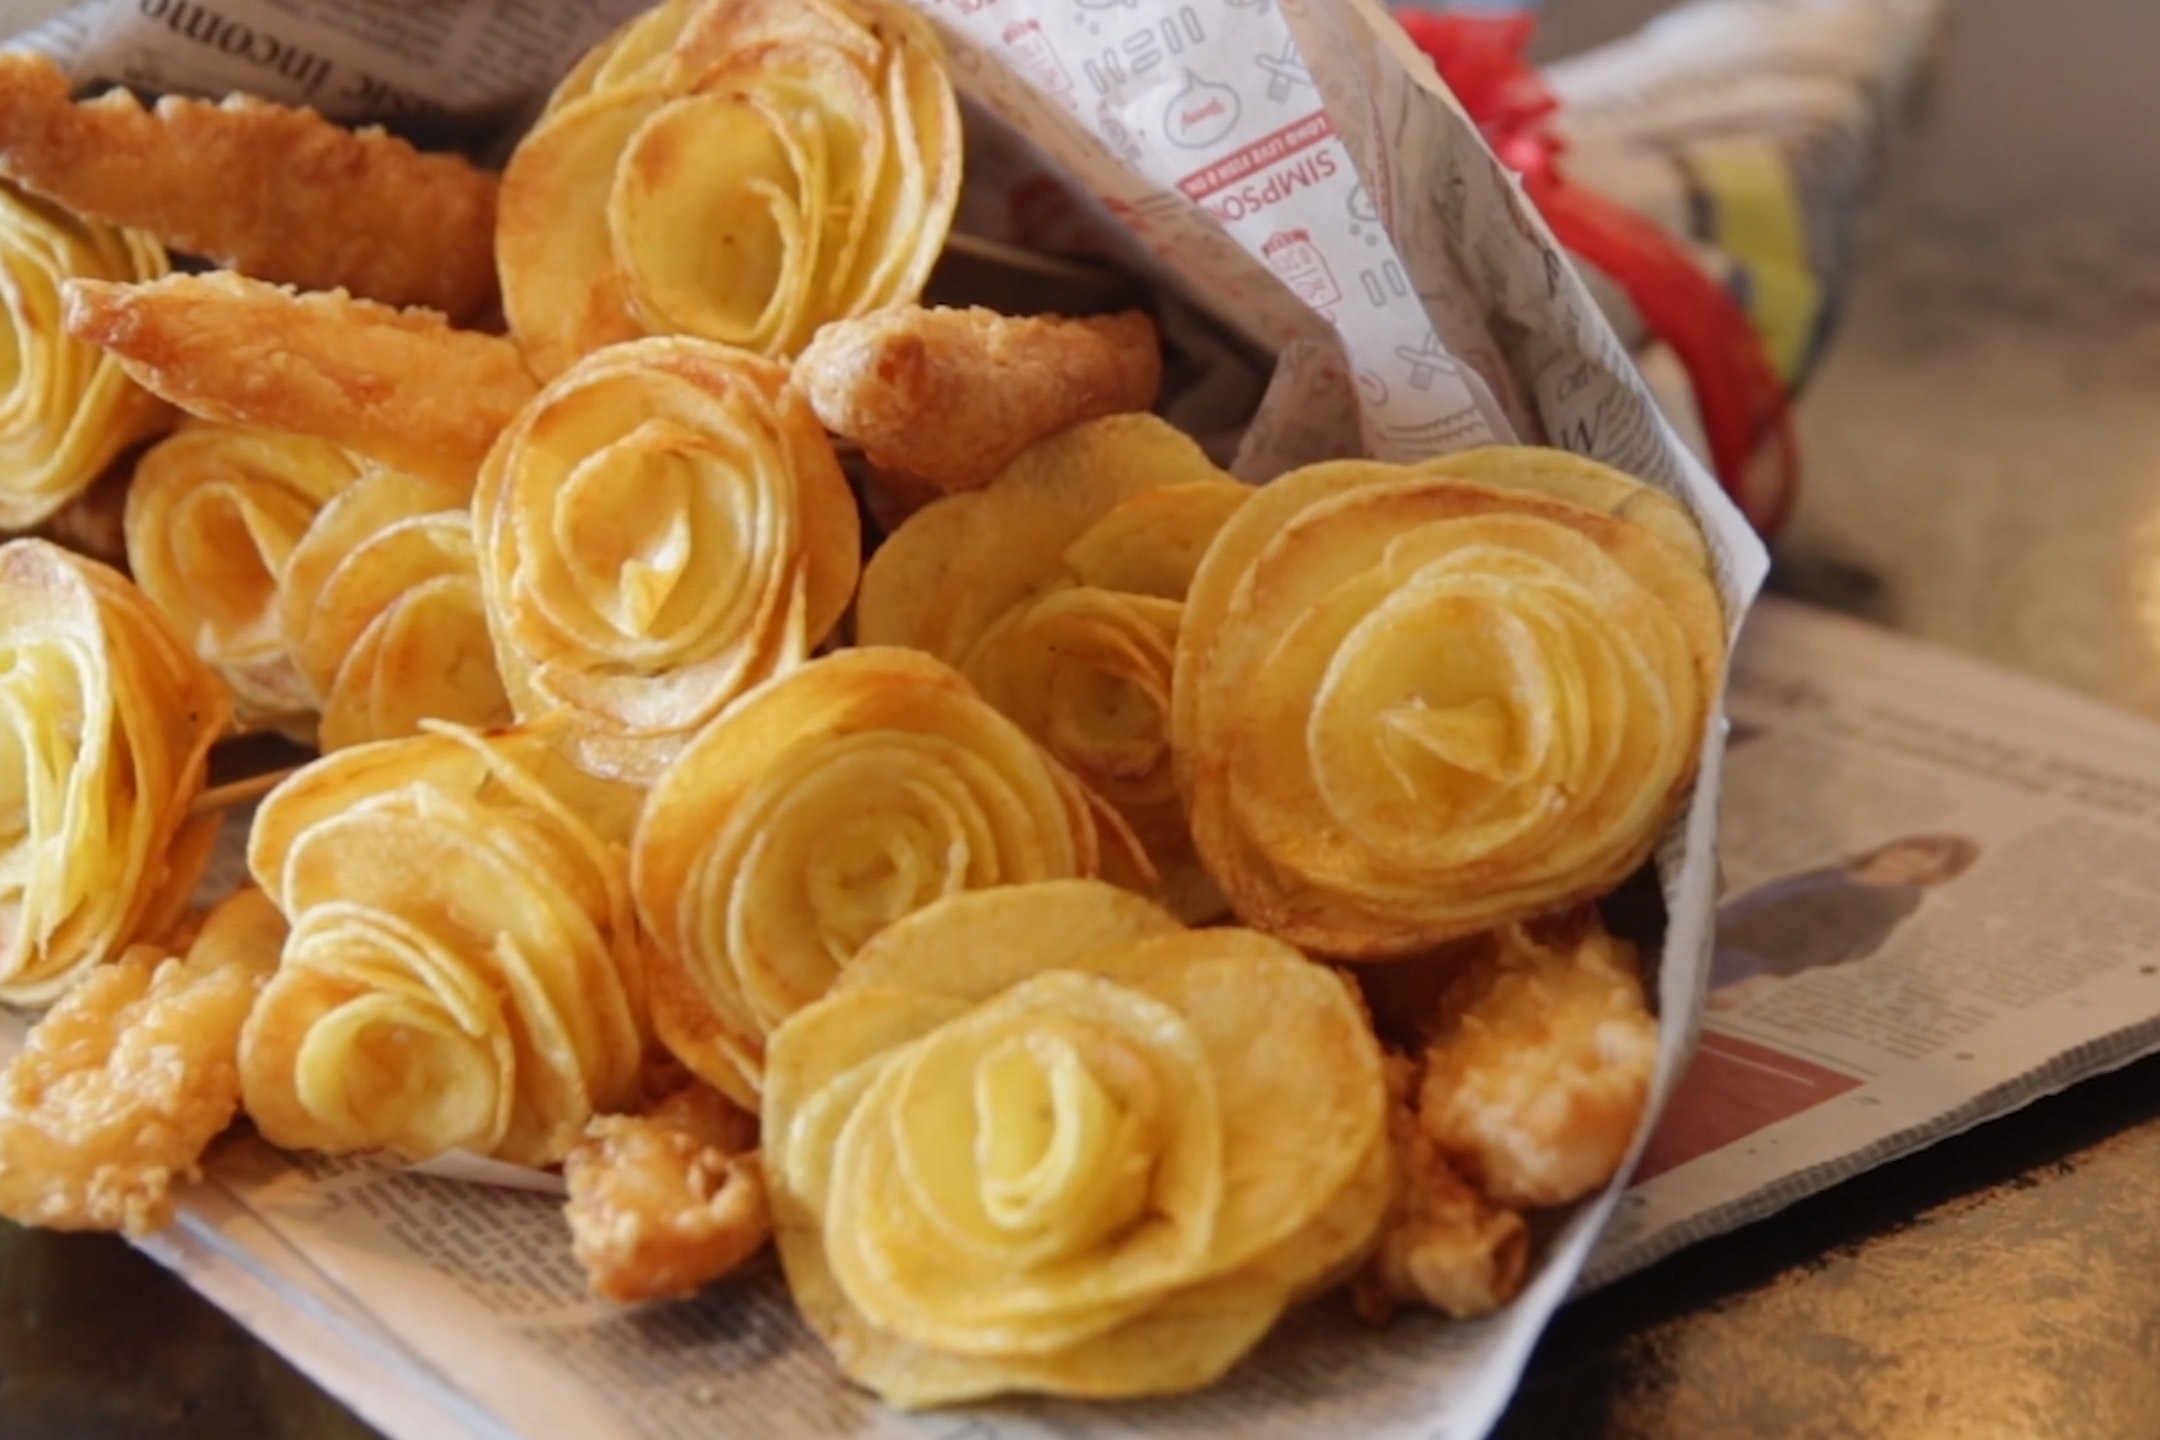 Fish and chip bouquet (screenshot/PA)